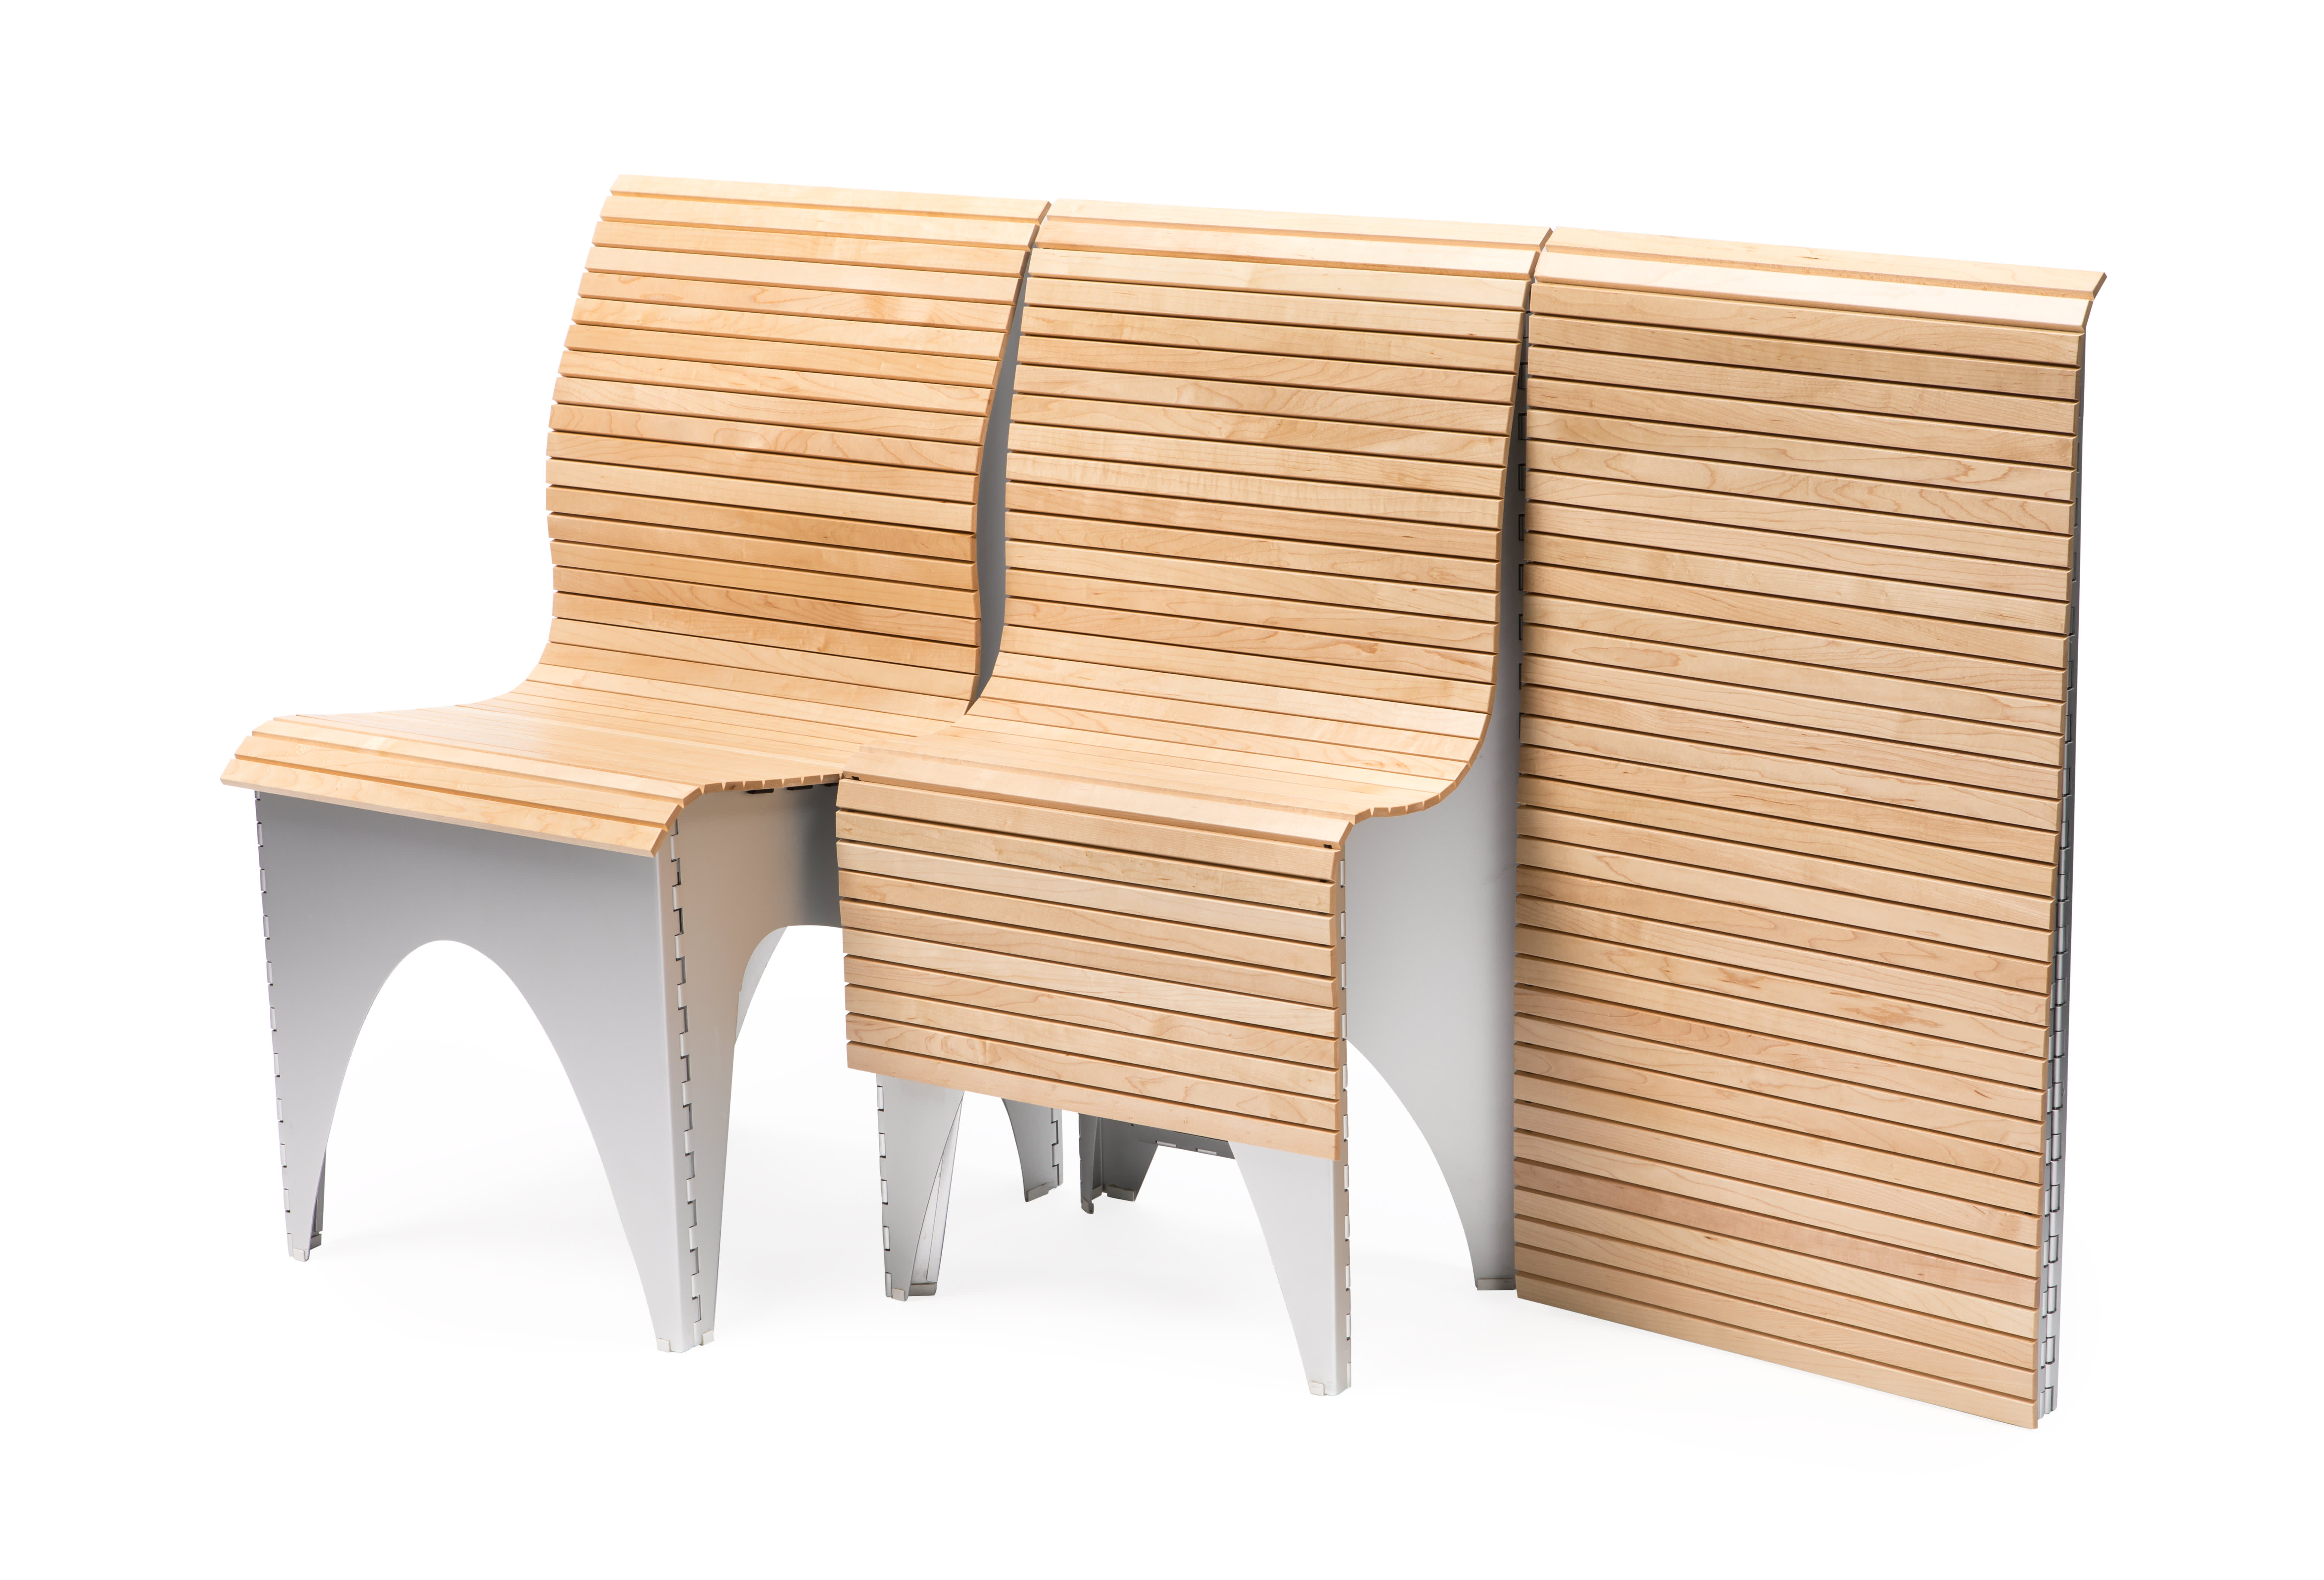 Sensational This Shape Shifting Chair Is A Small Space Lovers Dream Dailytribune Chair Design For Home Dailytribuneorg